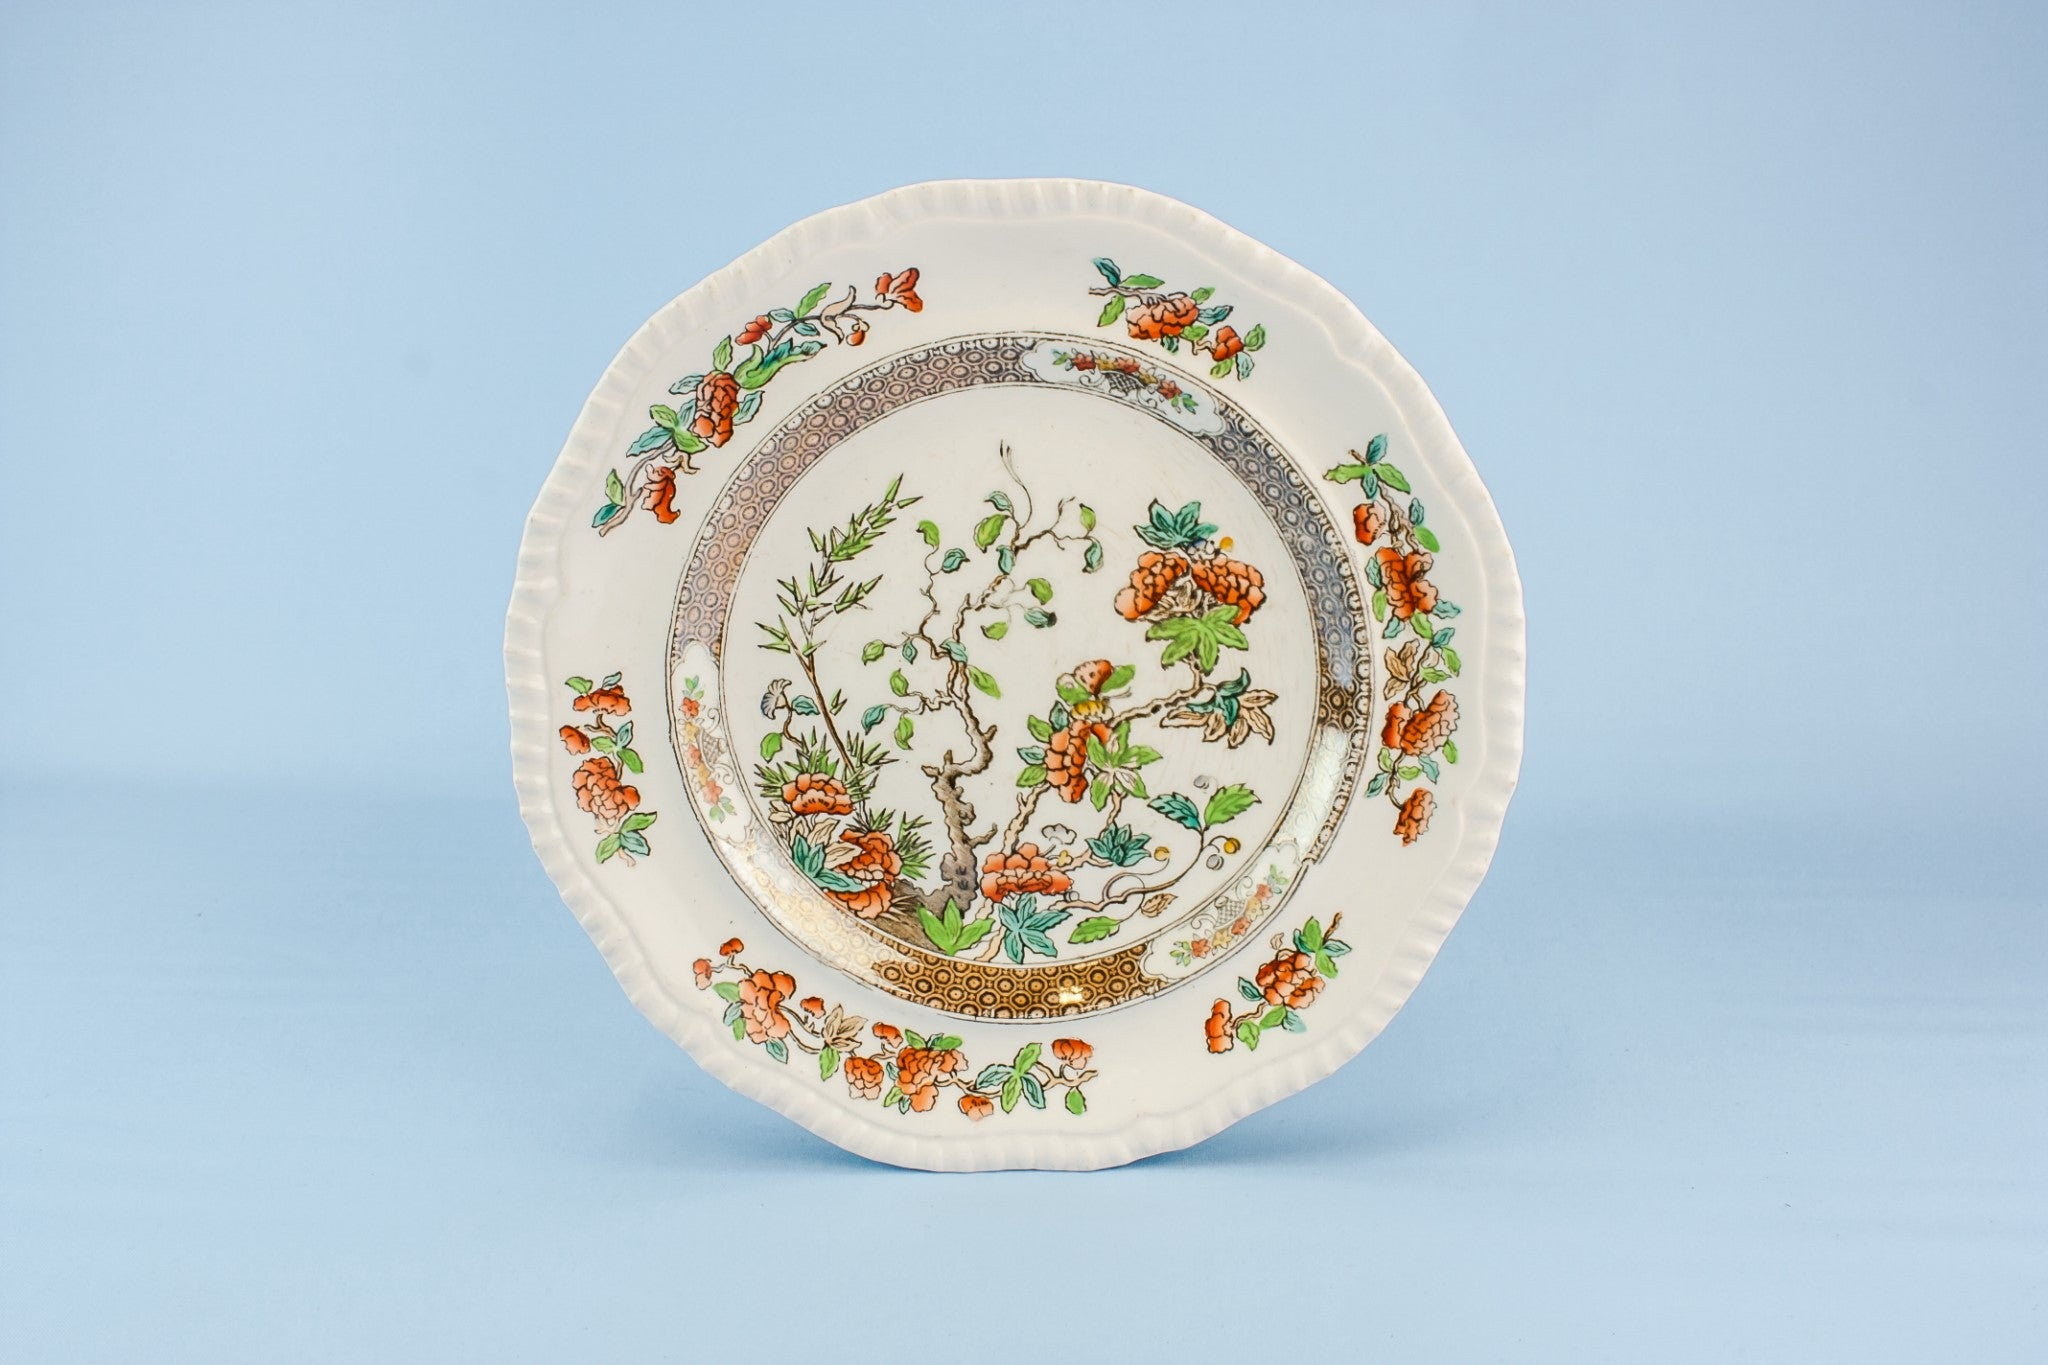 6 Copeland bone china plates